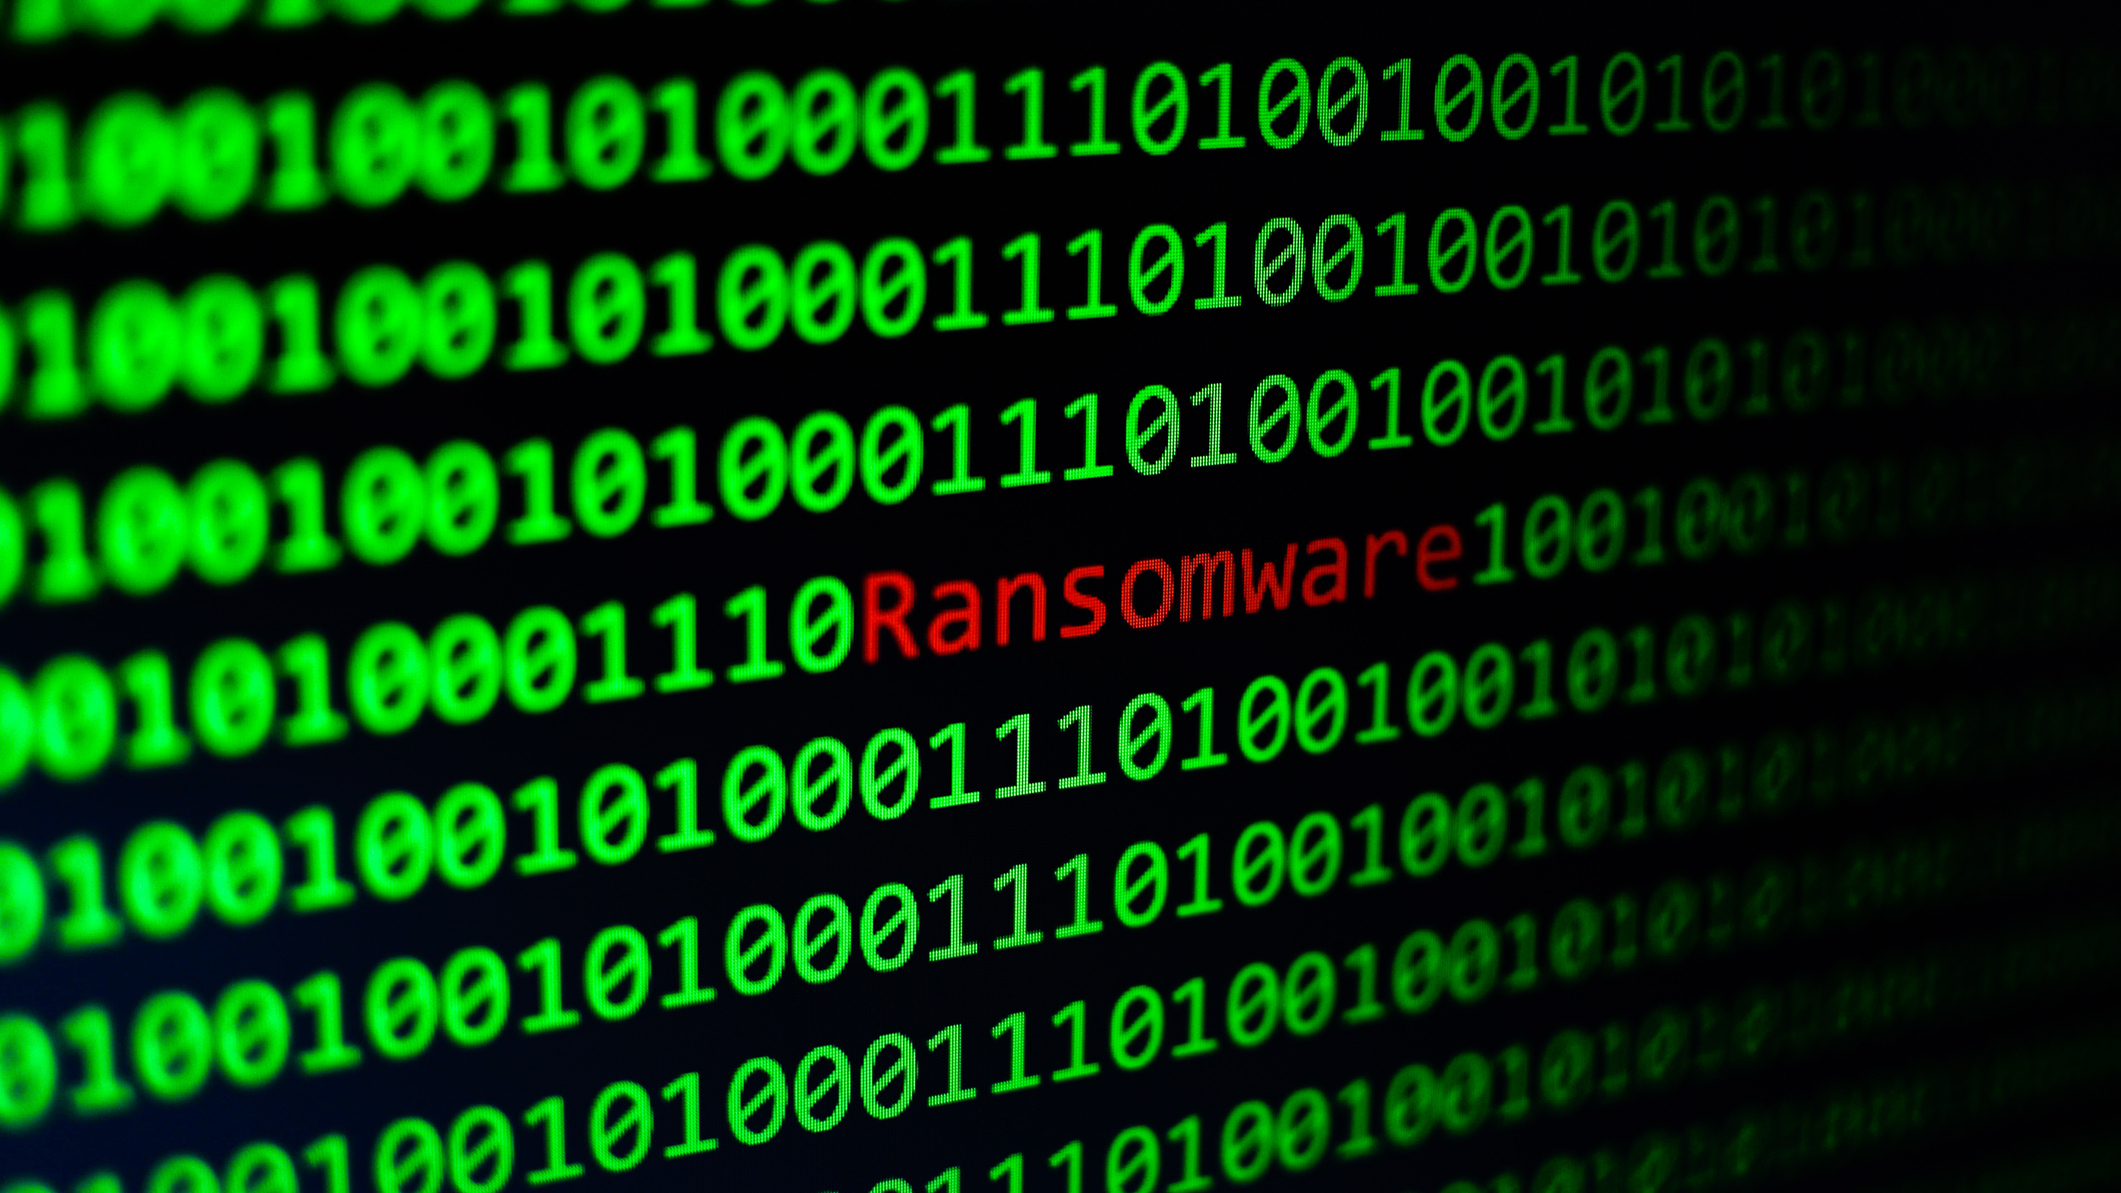 Baltimore: Ransomware attack hobbled city's dispatch system